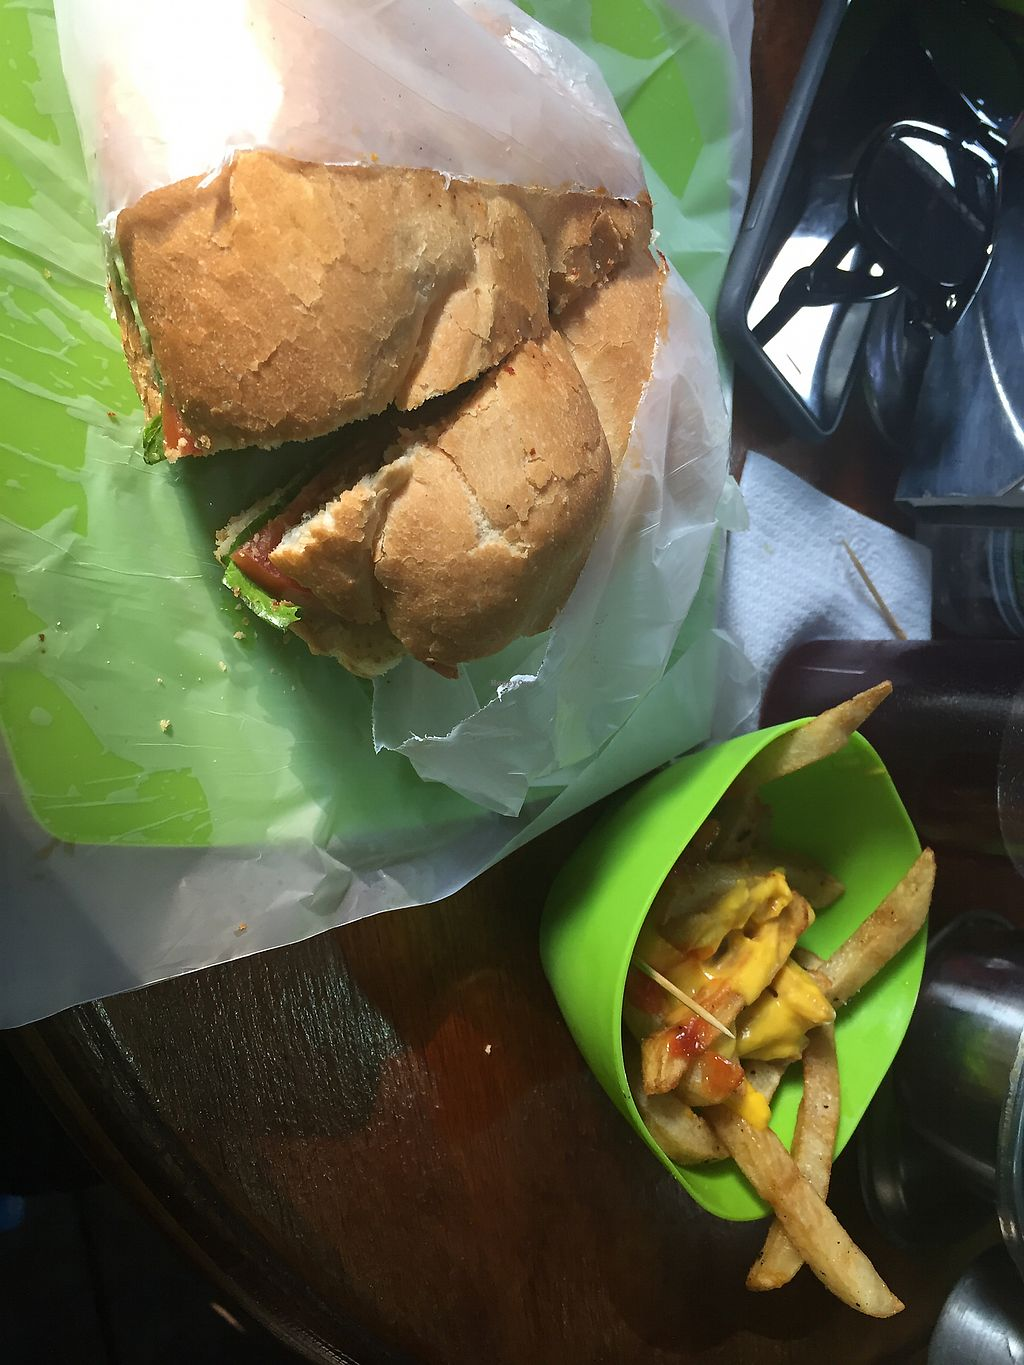 """Photo of Vegan Pa' Cá'  by <a href=""""/members/profile/SinzianaK"""">SinzianaK</a> <br/>Pastor torta  <br/> December 22, 2017  - <a href='/contact/abuse/image/57926/338216'>Report</a>"""